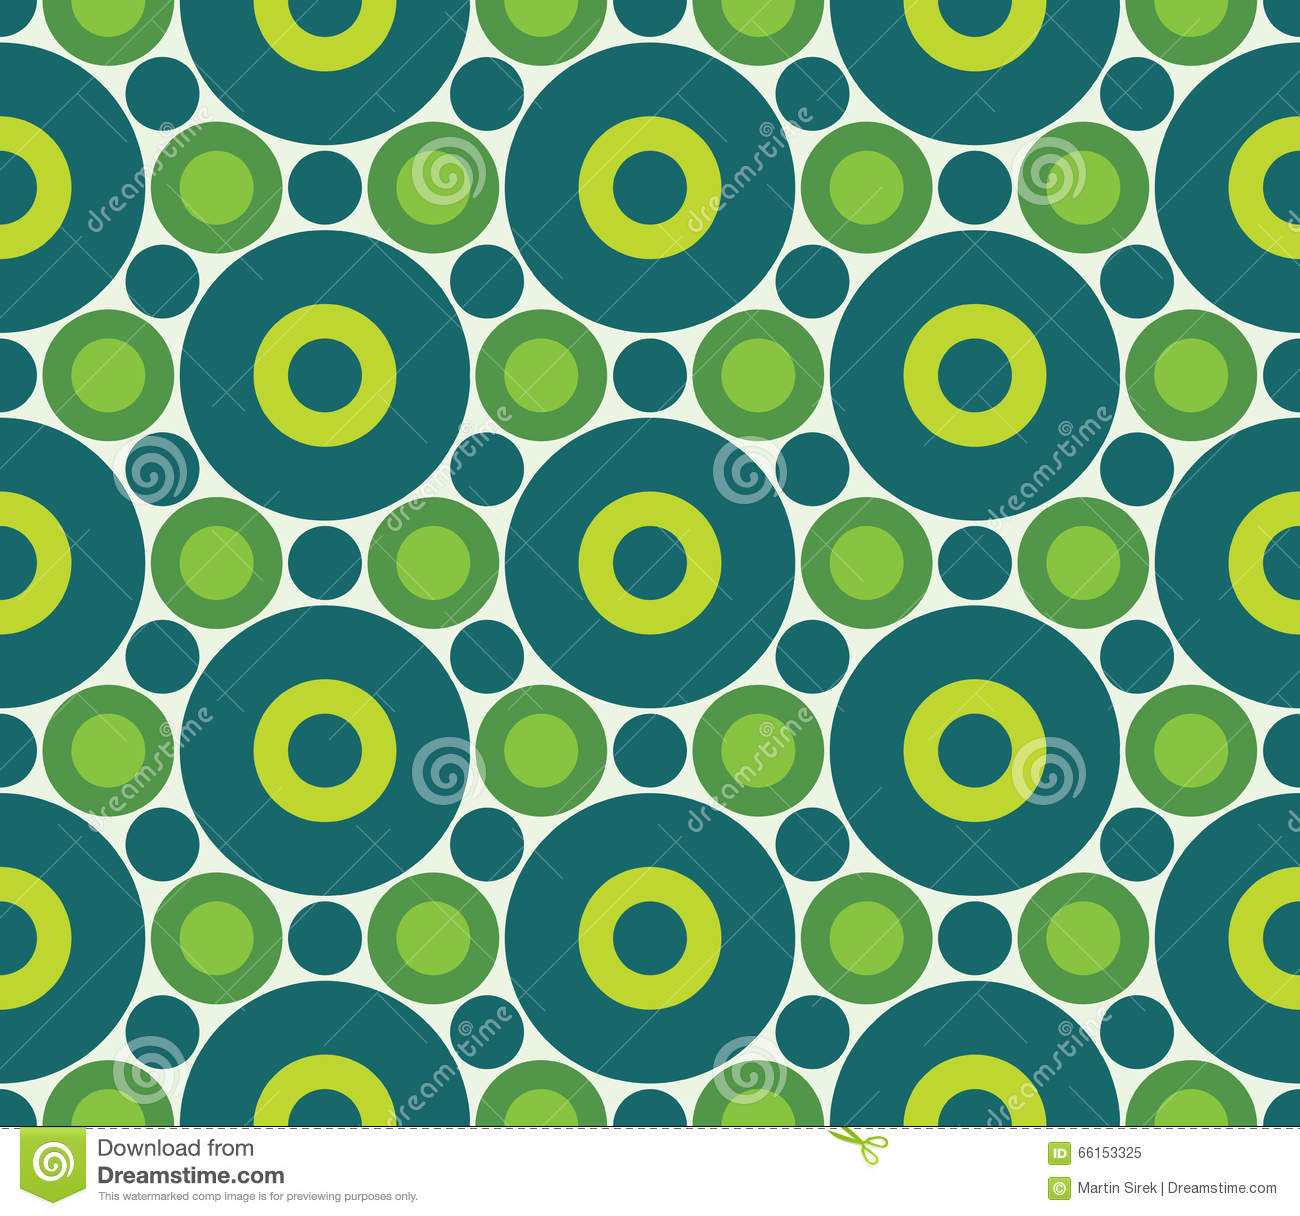 Vector Modern Seamless Colorful Geometry Circle Pattern